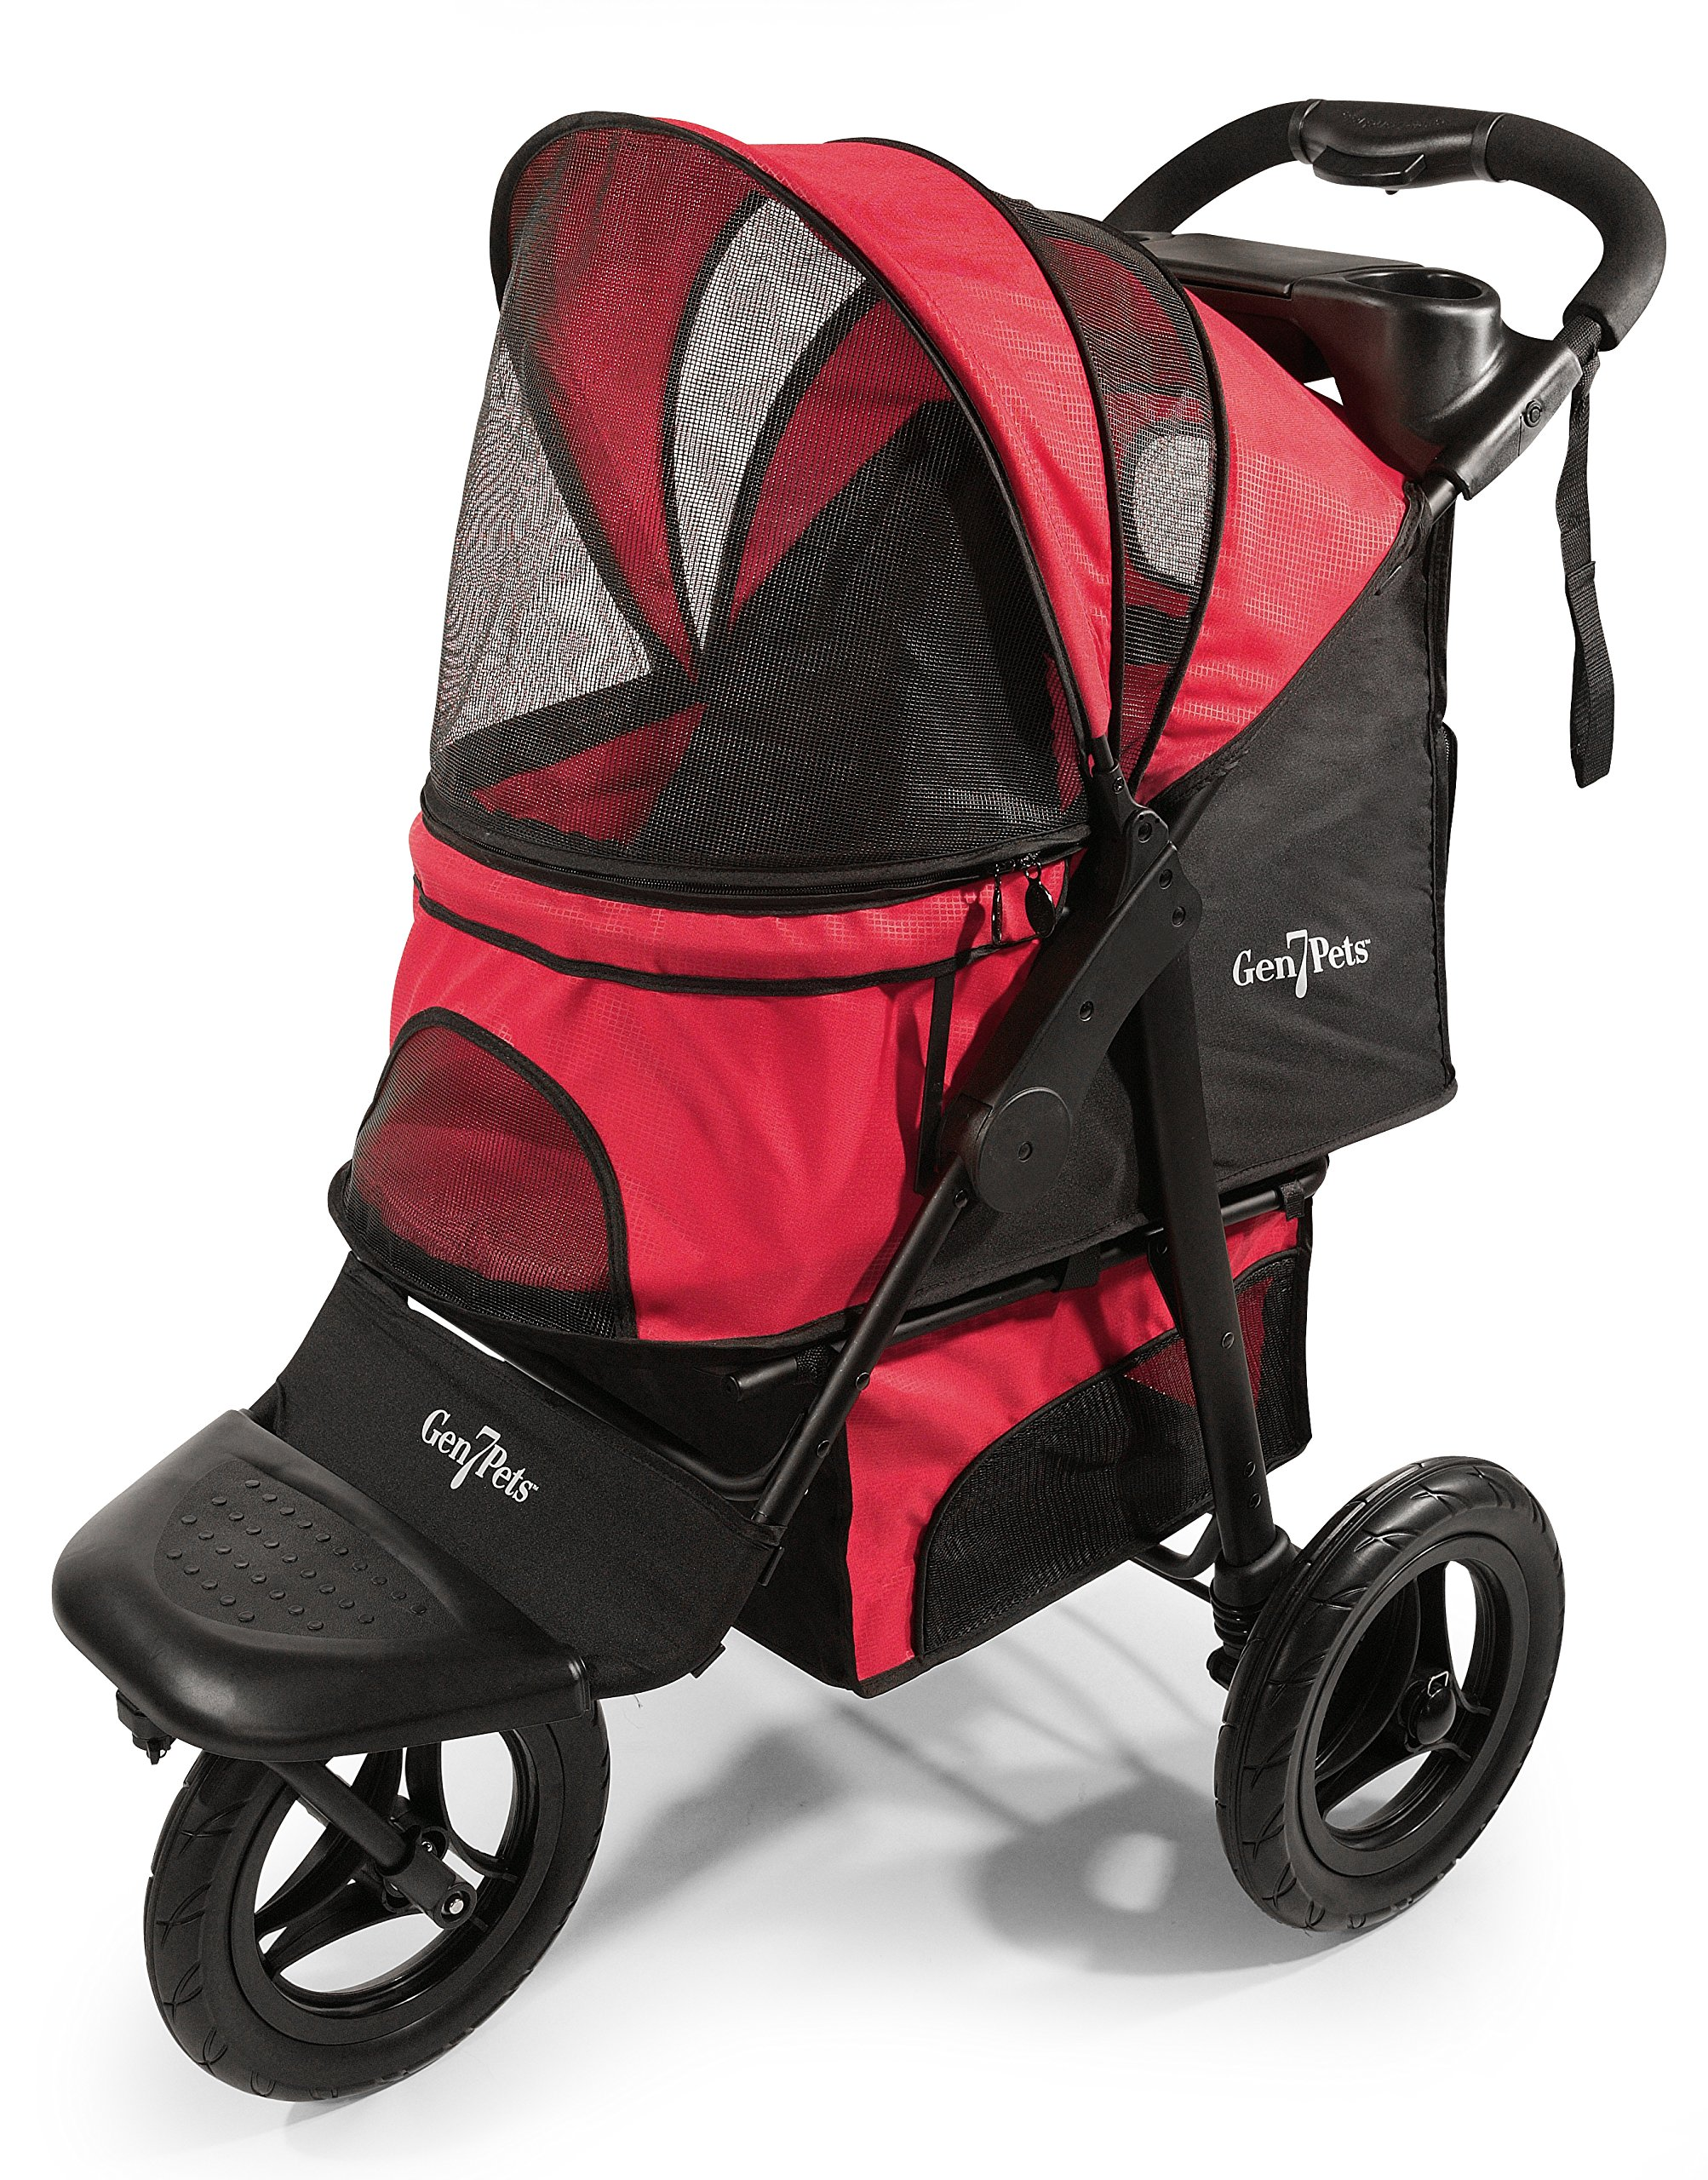 Gen7Pets G7 Jogger Pet Stroller for Dogs or Cats Up to 75 lb, Pathfinder Red by Gen7Pets